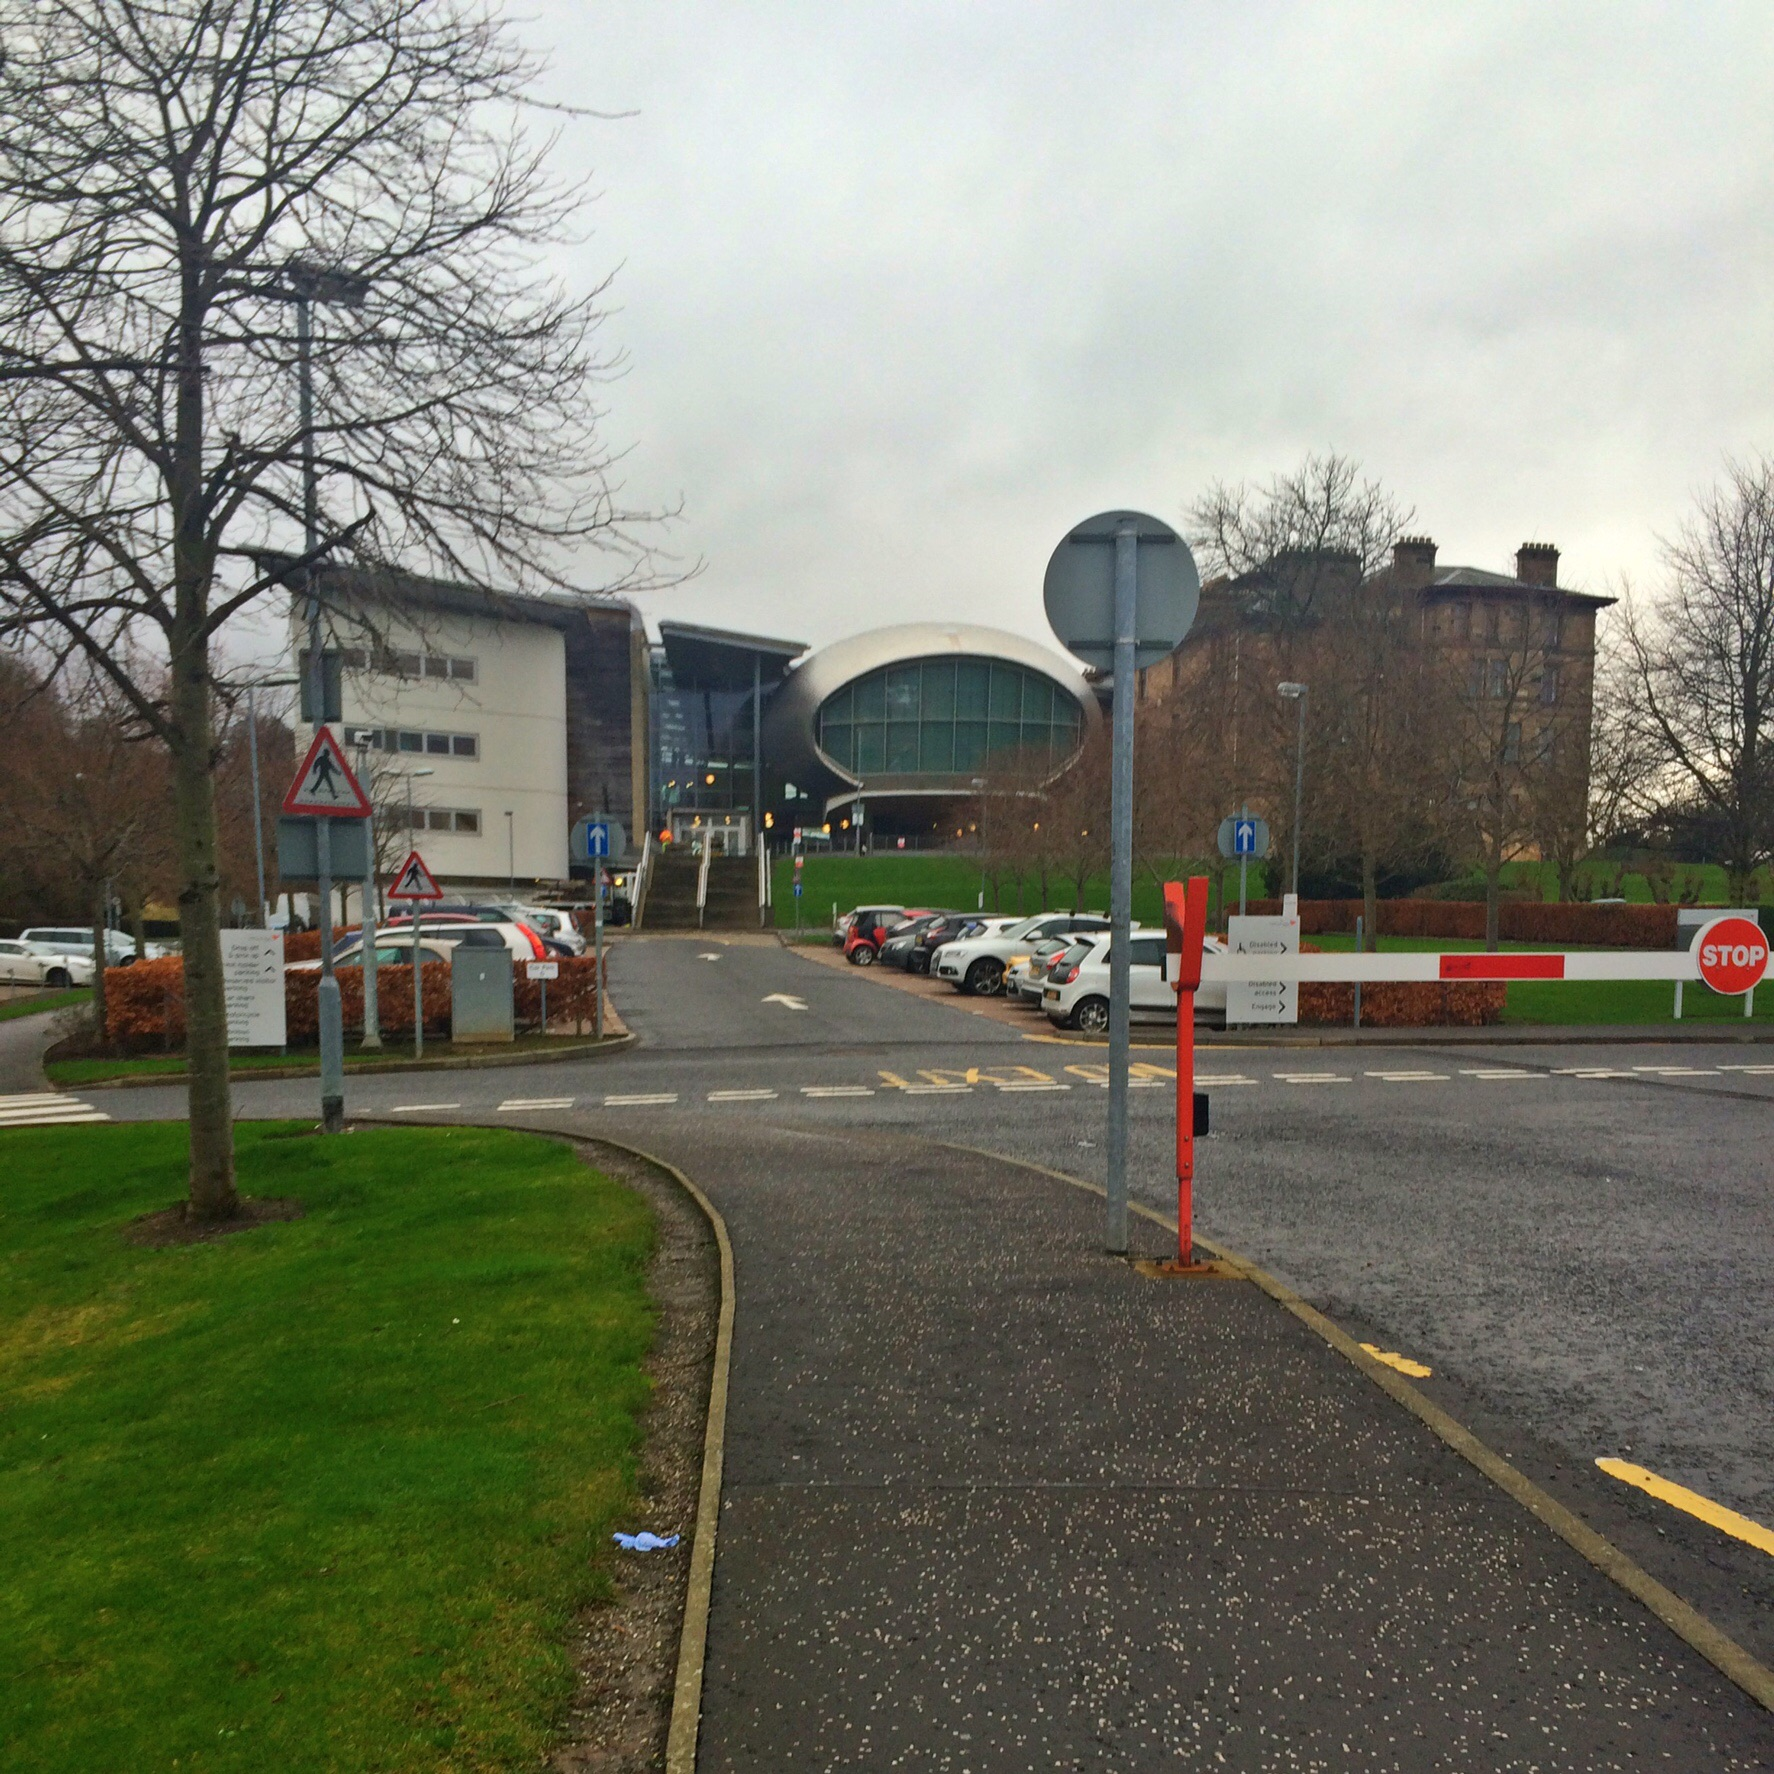 The Craiglockhart campus at Edinburgh Napier University.